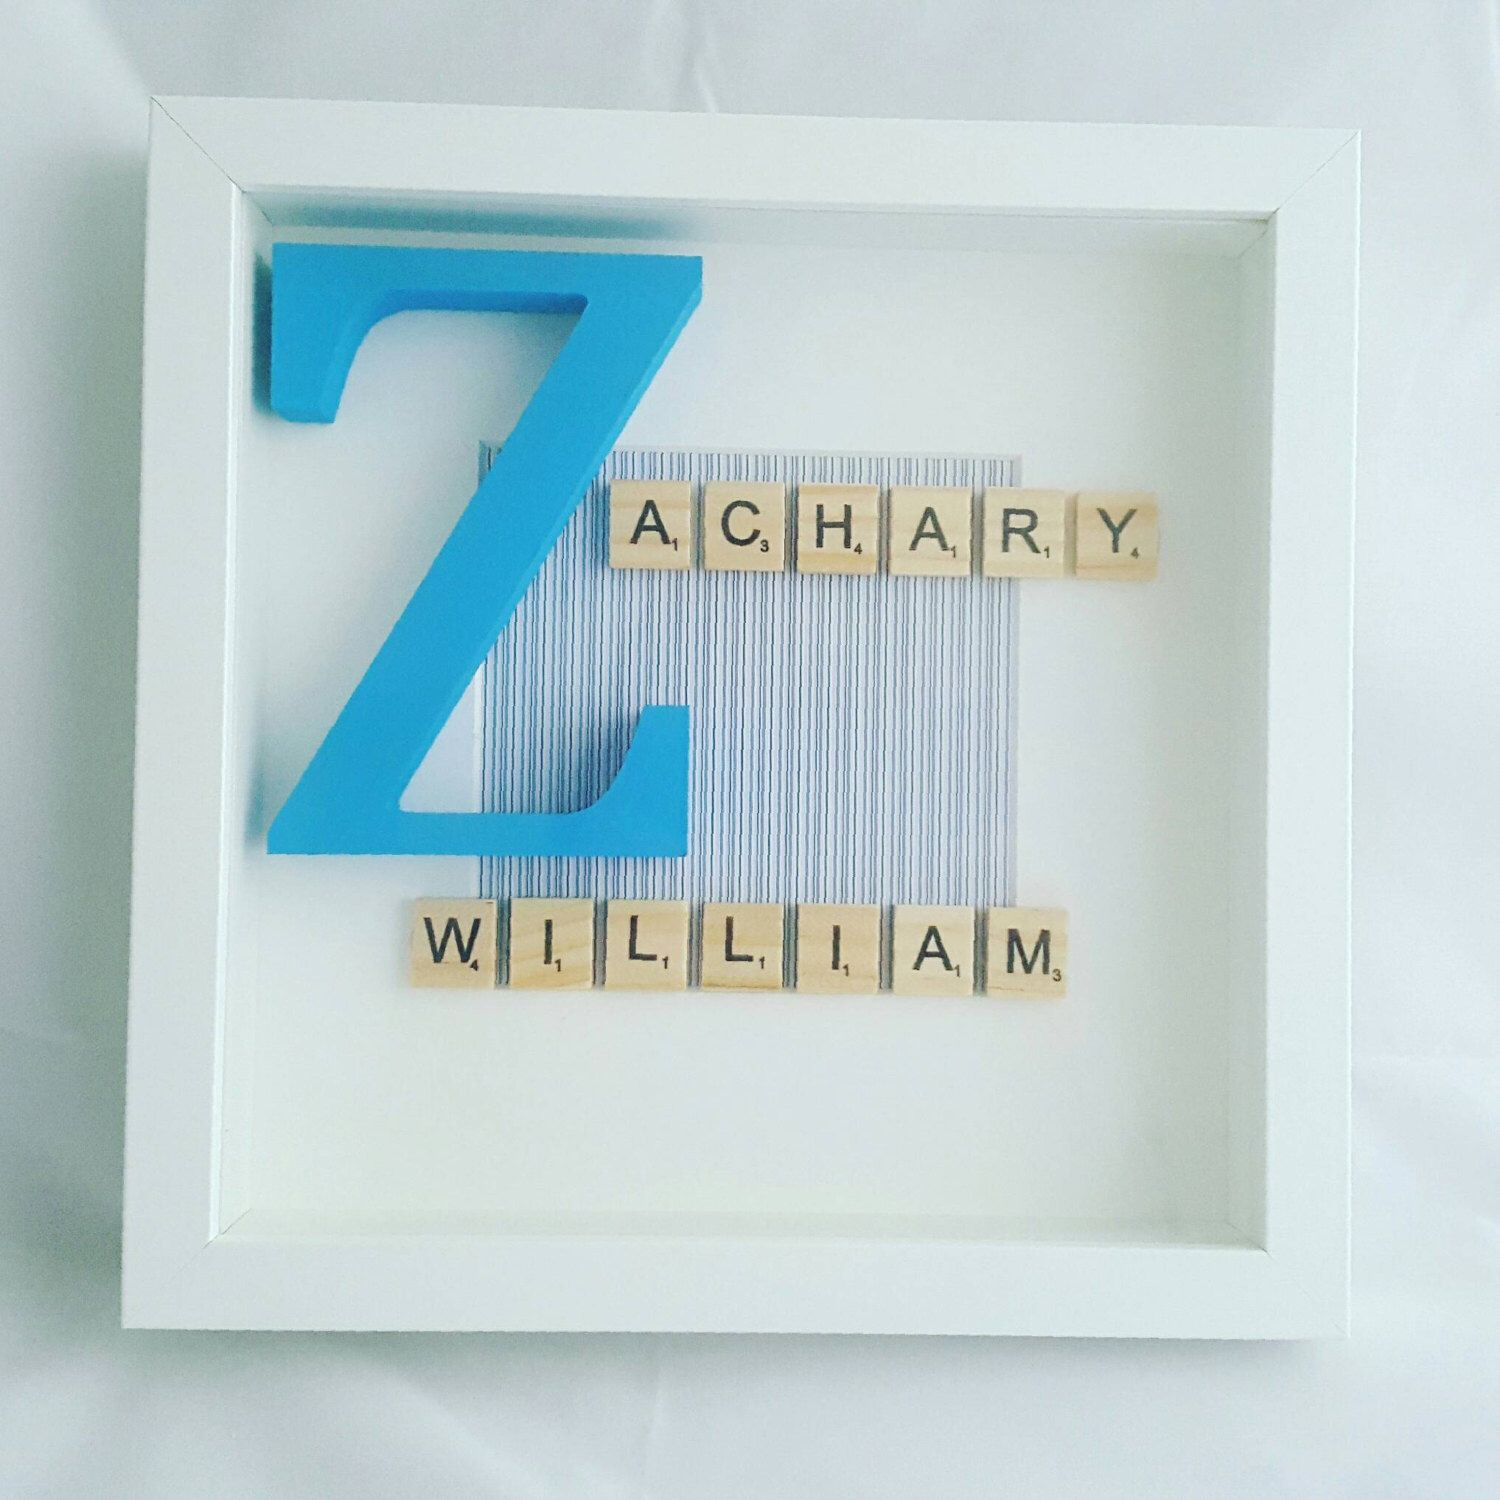 Scrabble tile name in a frame by on Etsy